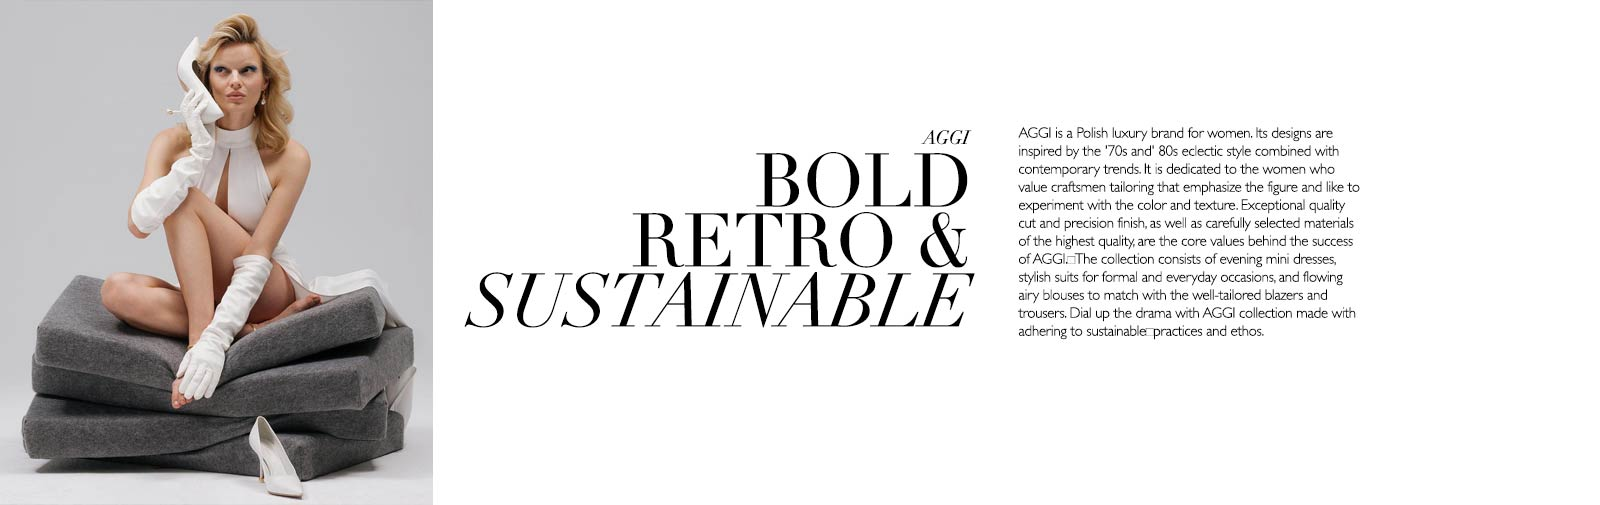 AGGI - BOLD RETRO & SUSTAINABLE - AGGI is a Polish luxury brand for women. Its designs are inspired by the '70s and' 80s eclectic style combined with contemporary trends. It is dedicated to the women who value craftsmen tailoring that emphasize the figure and like to experiment with the color and texture. Exceptional quality cut and precision finish, as well as carefully selected materials of the highest quality, are the core values behind the success of AGGI. The collection consists of evening mini dresses, stylish suits for formal and everyday occasions, and flowing airy blouses to match with the well-tailored blazers and trousers. Dial up the drama with AGGI collection made with adhering to sustainable practices and ethos.